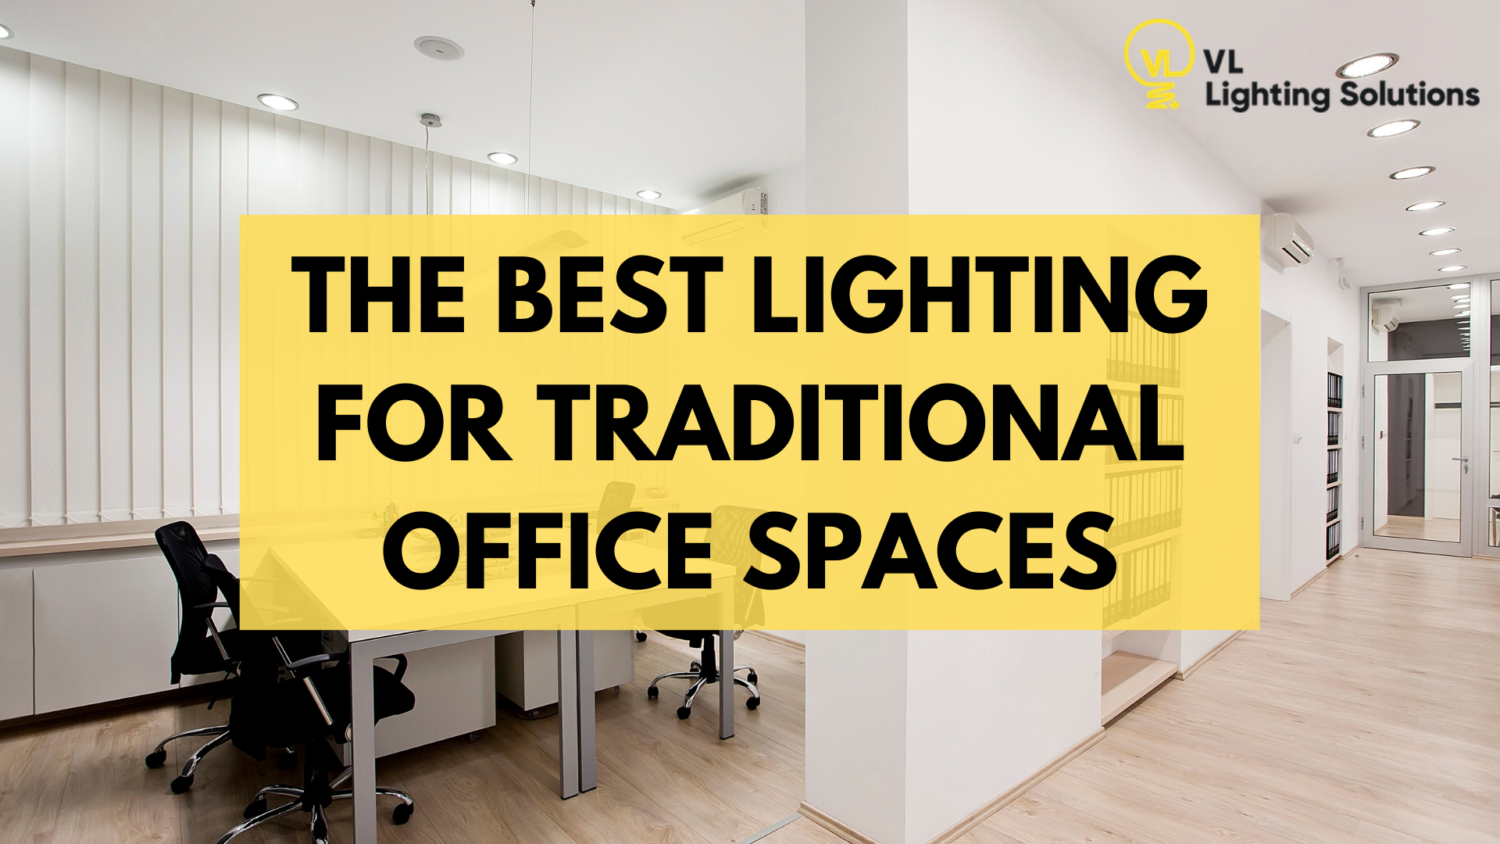 The Best Lighting for Traditional Office Spaces